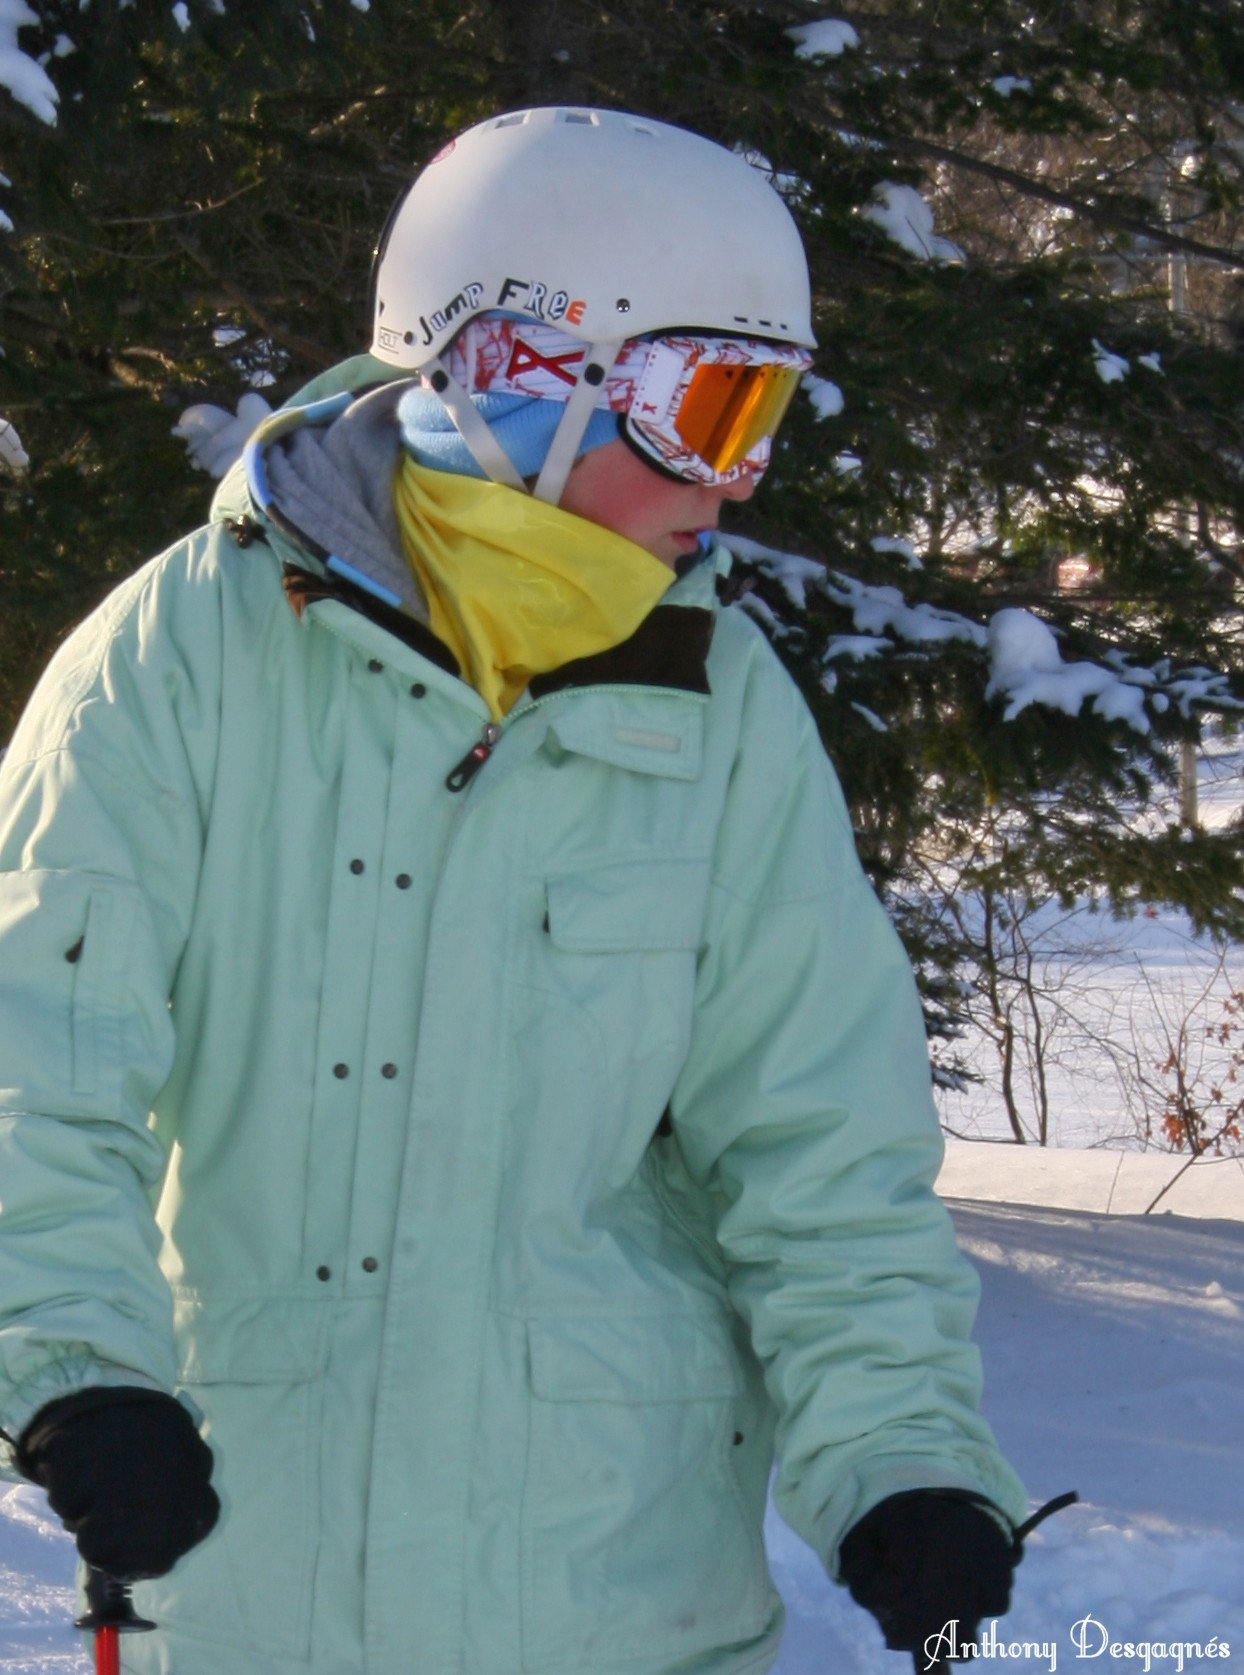 Me Before Going On A Rail